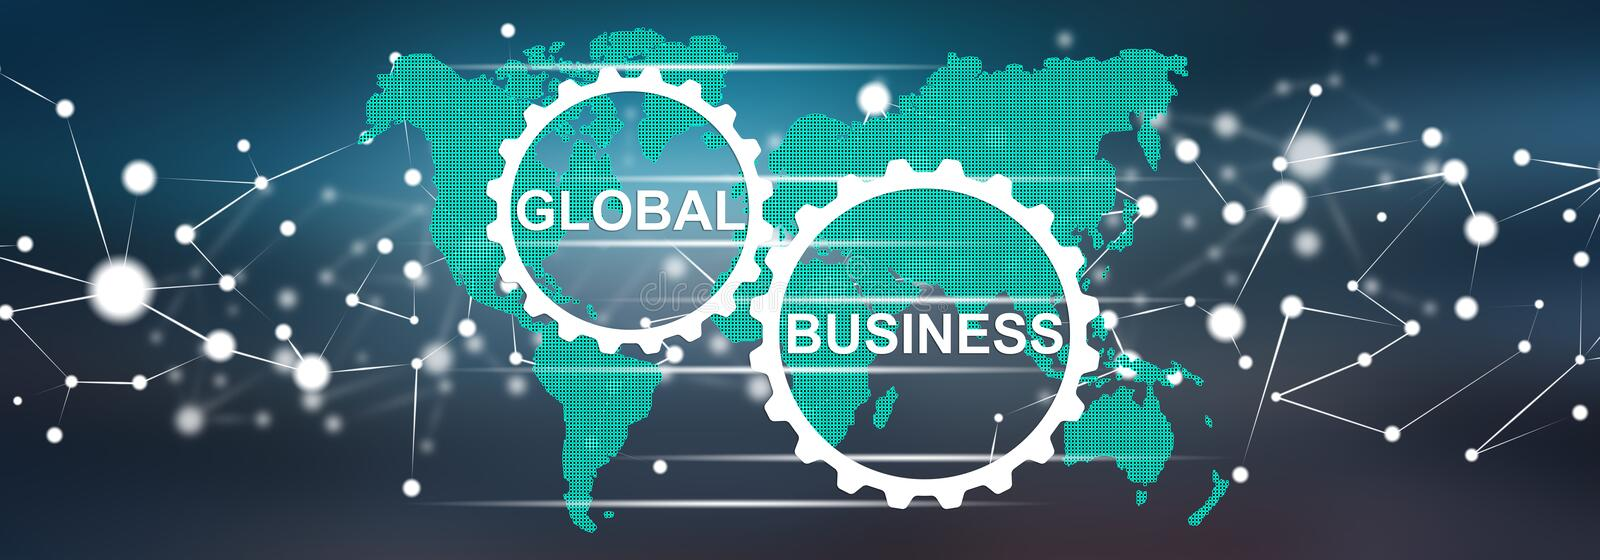 Concept of global business stock illustration